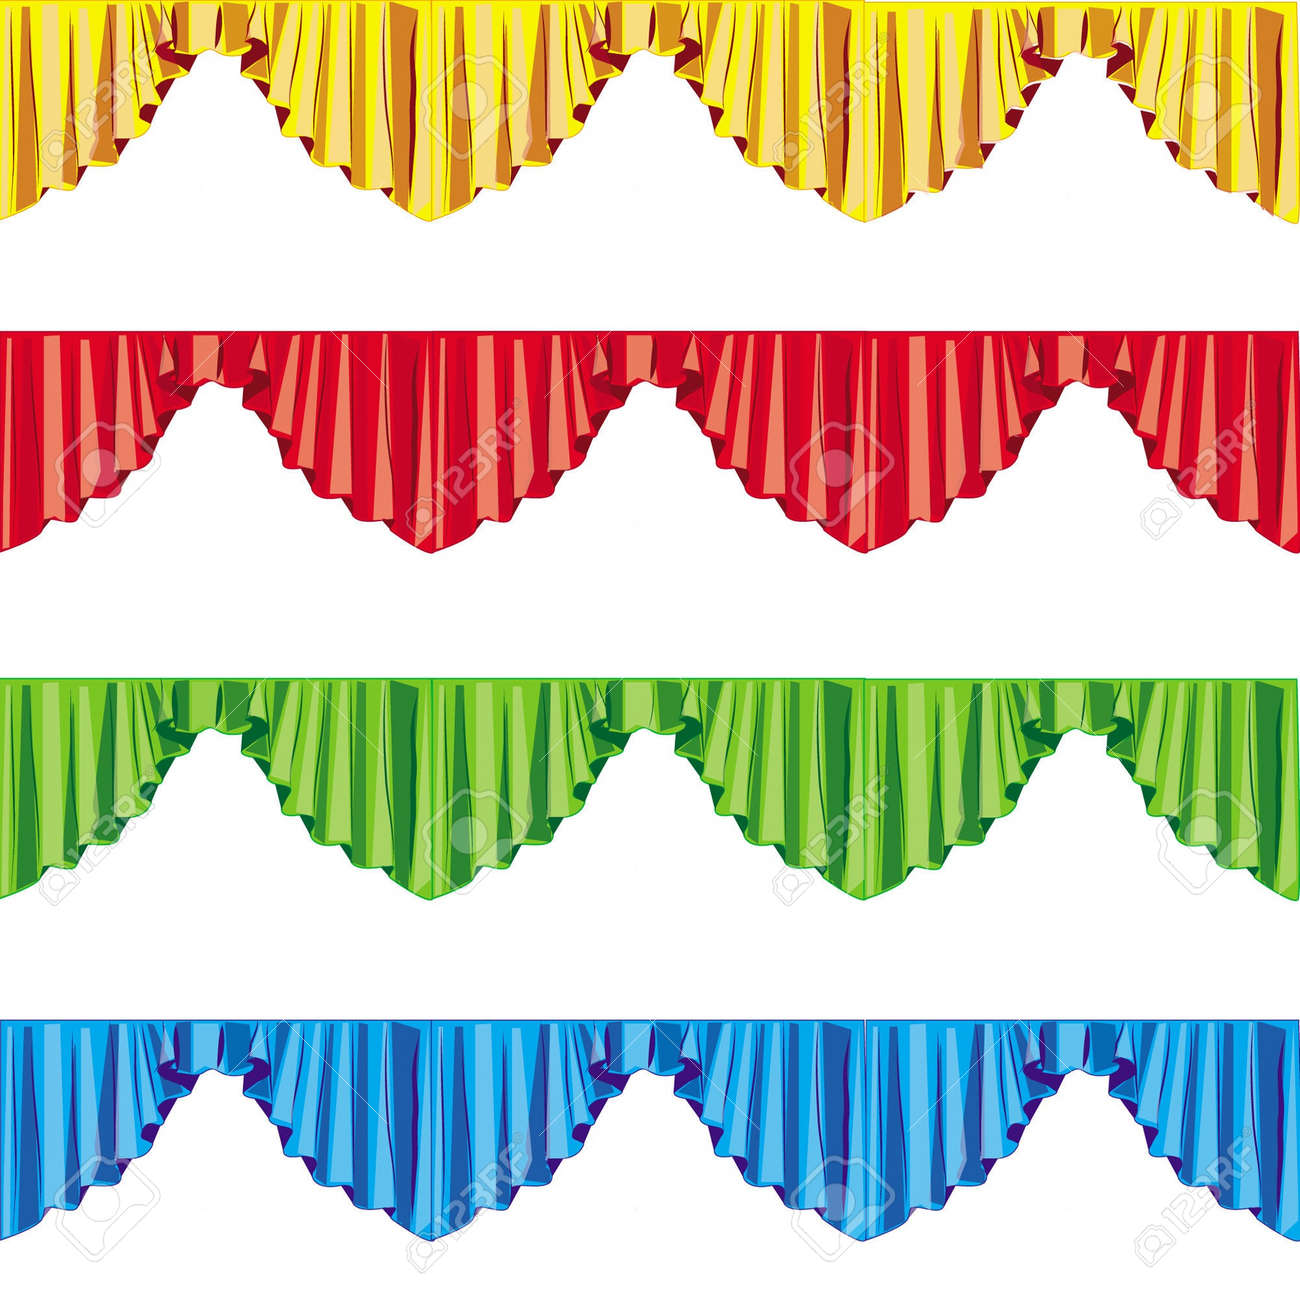 curtain drapes lambrican color, isolated on white background Stock Vector - 14807278